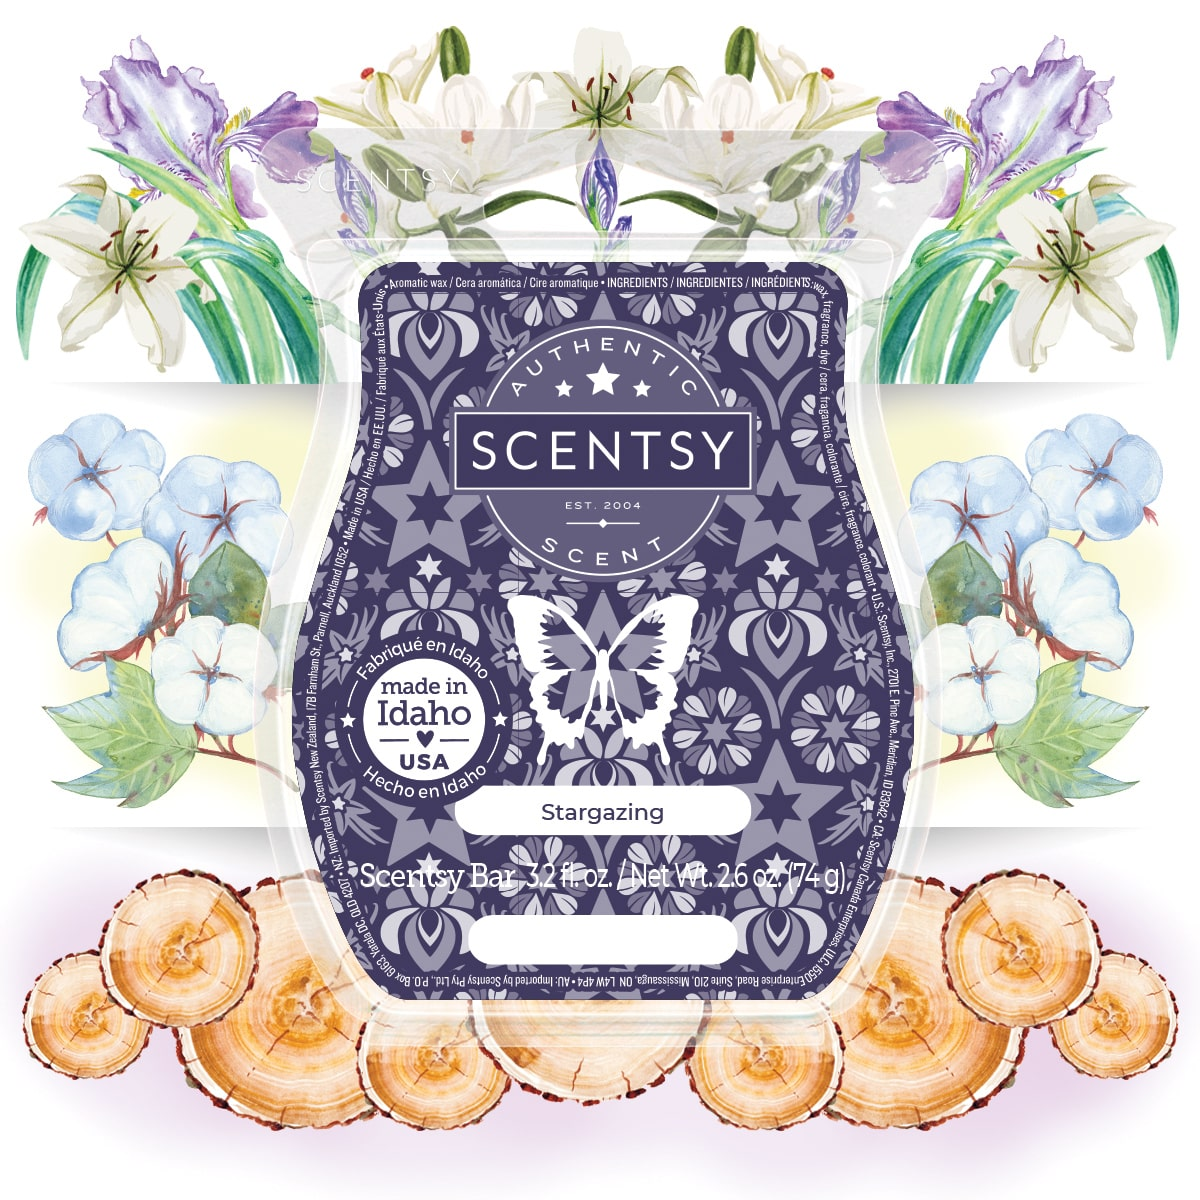 Stargaze Scentsy Fragrance July 2021 | Scentsy July 2021 Warmer & Scent of the Month | Above the Clouds Warmer & Stargazing Fragrance